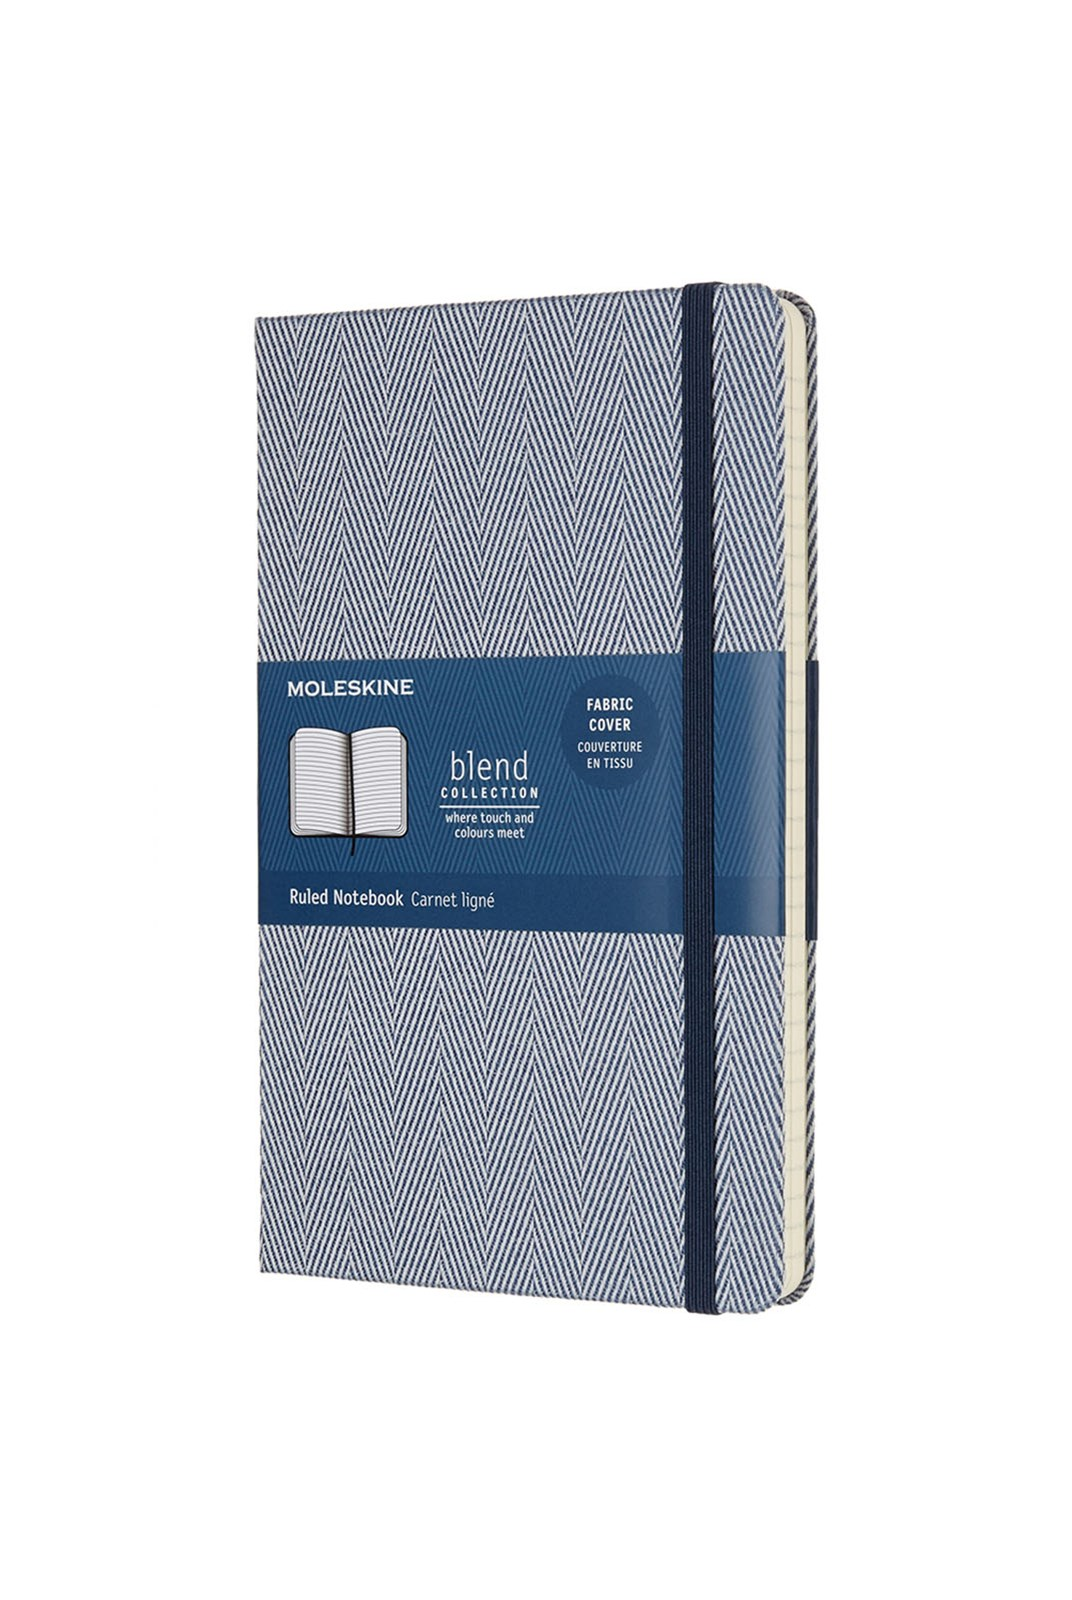 Moleskine - Blend Notebook - Ruled - Large - Twill Blue